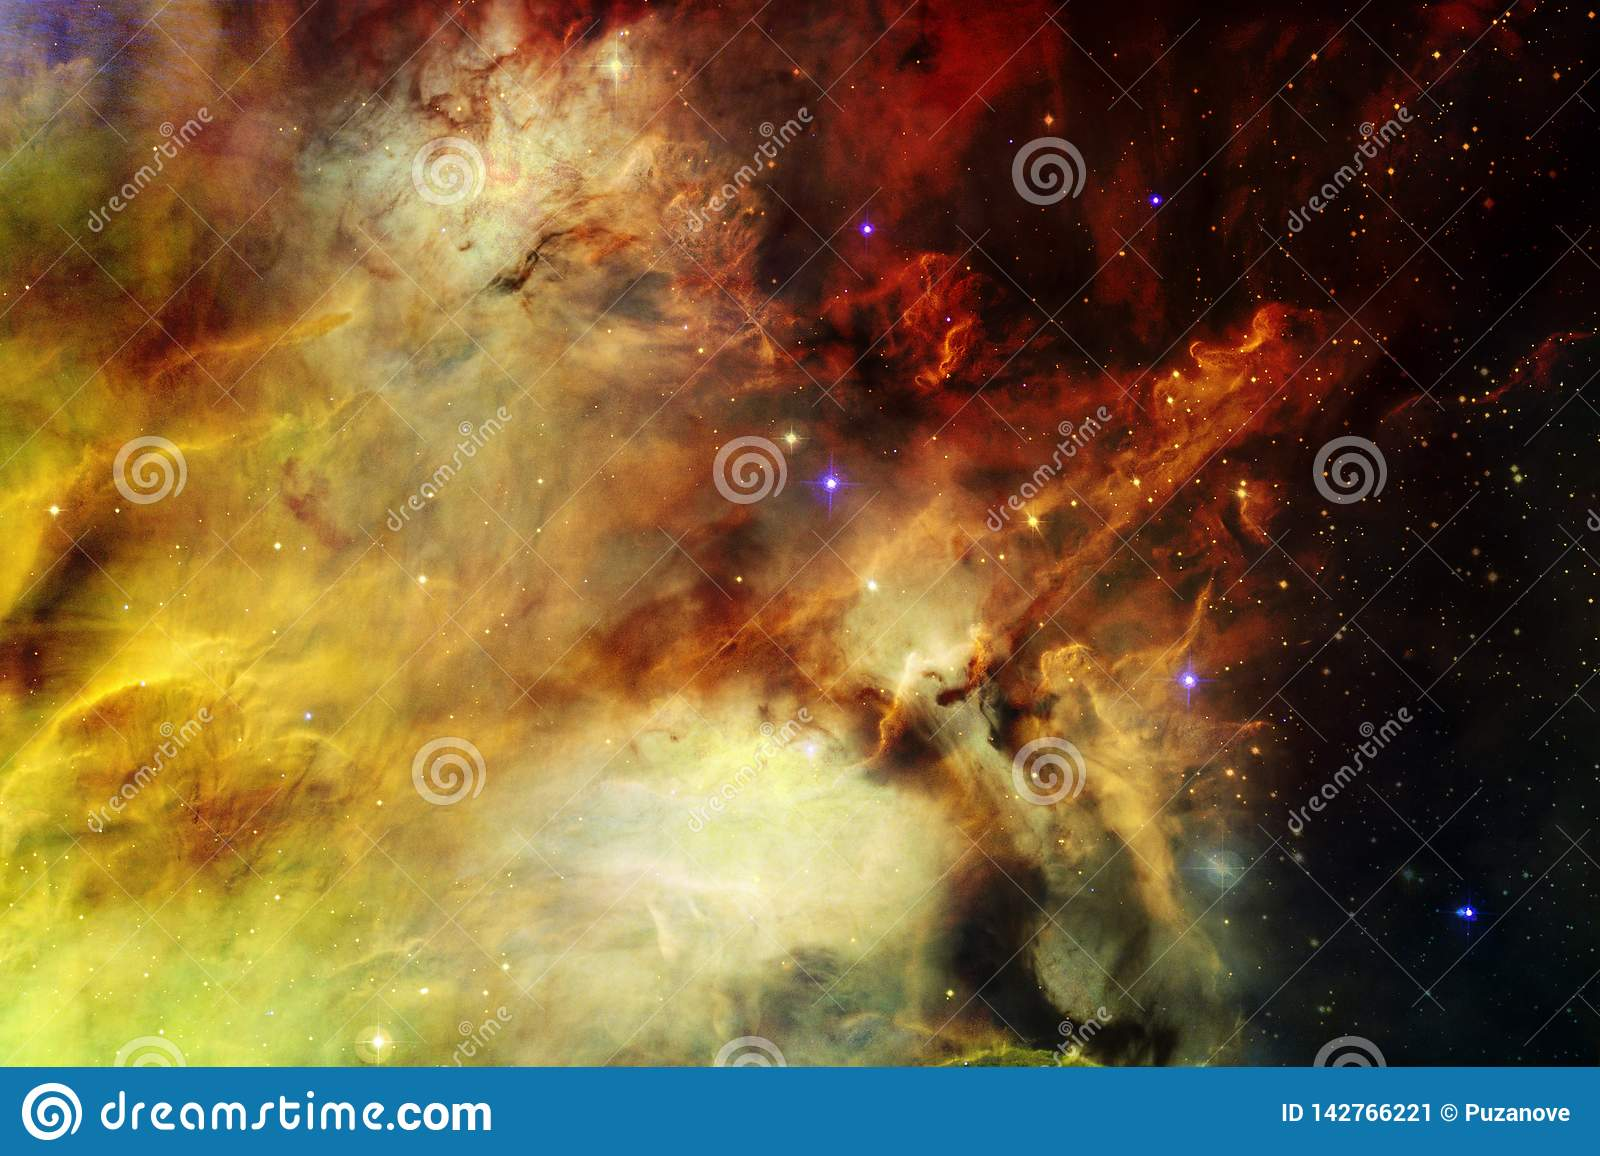 Beauty Of Outer Space Science Fiction Wallpaper Stock